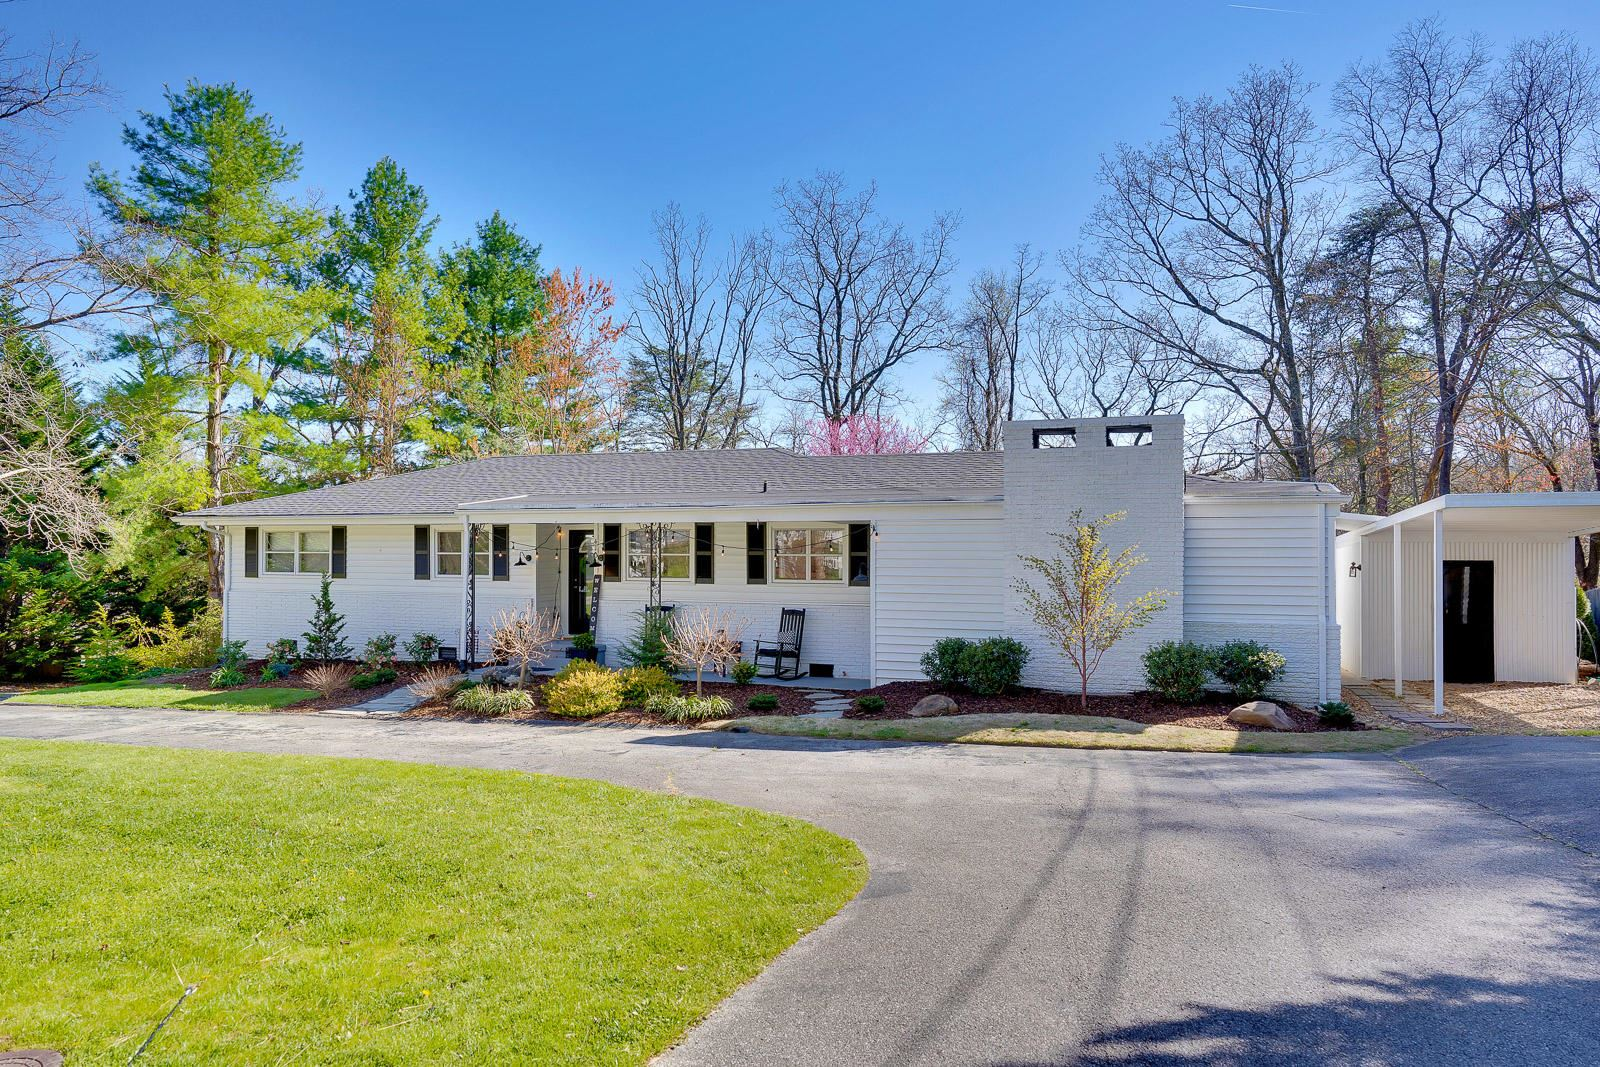 410 Mississippi Ave, Signal Mountain, TN 37377 - #: 1333628